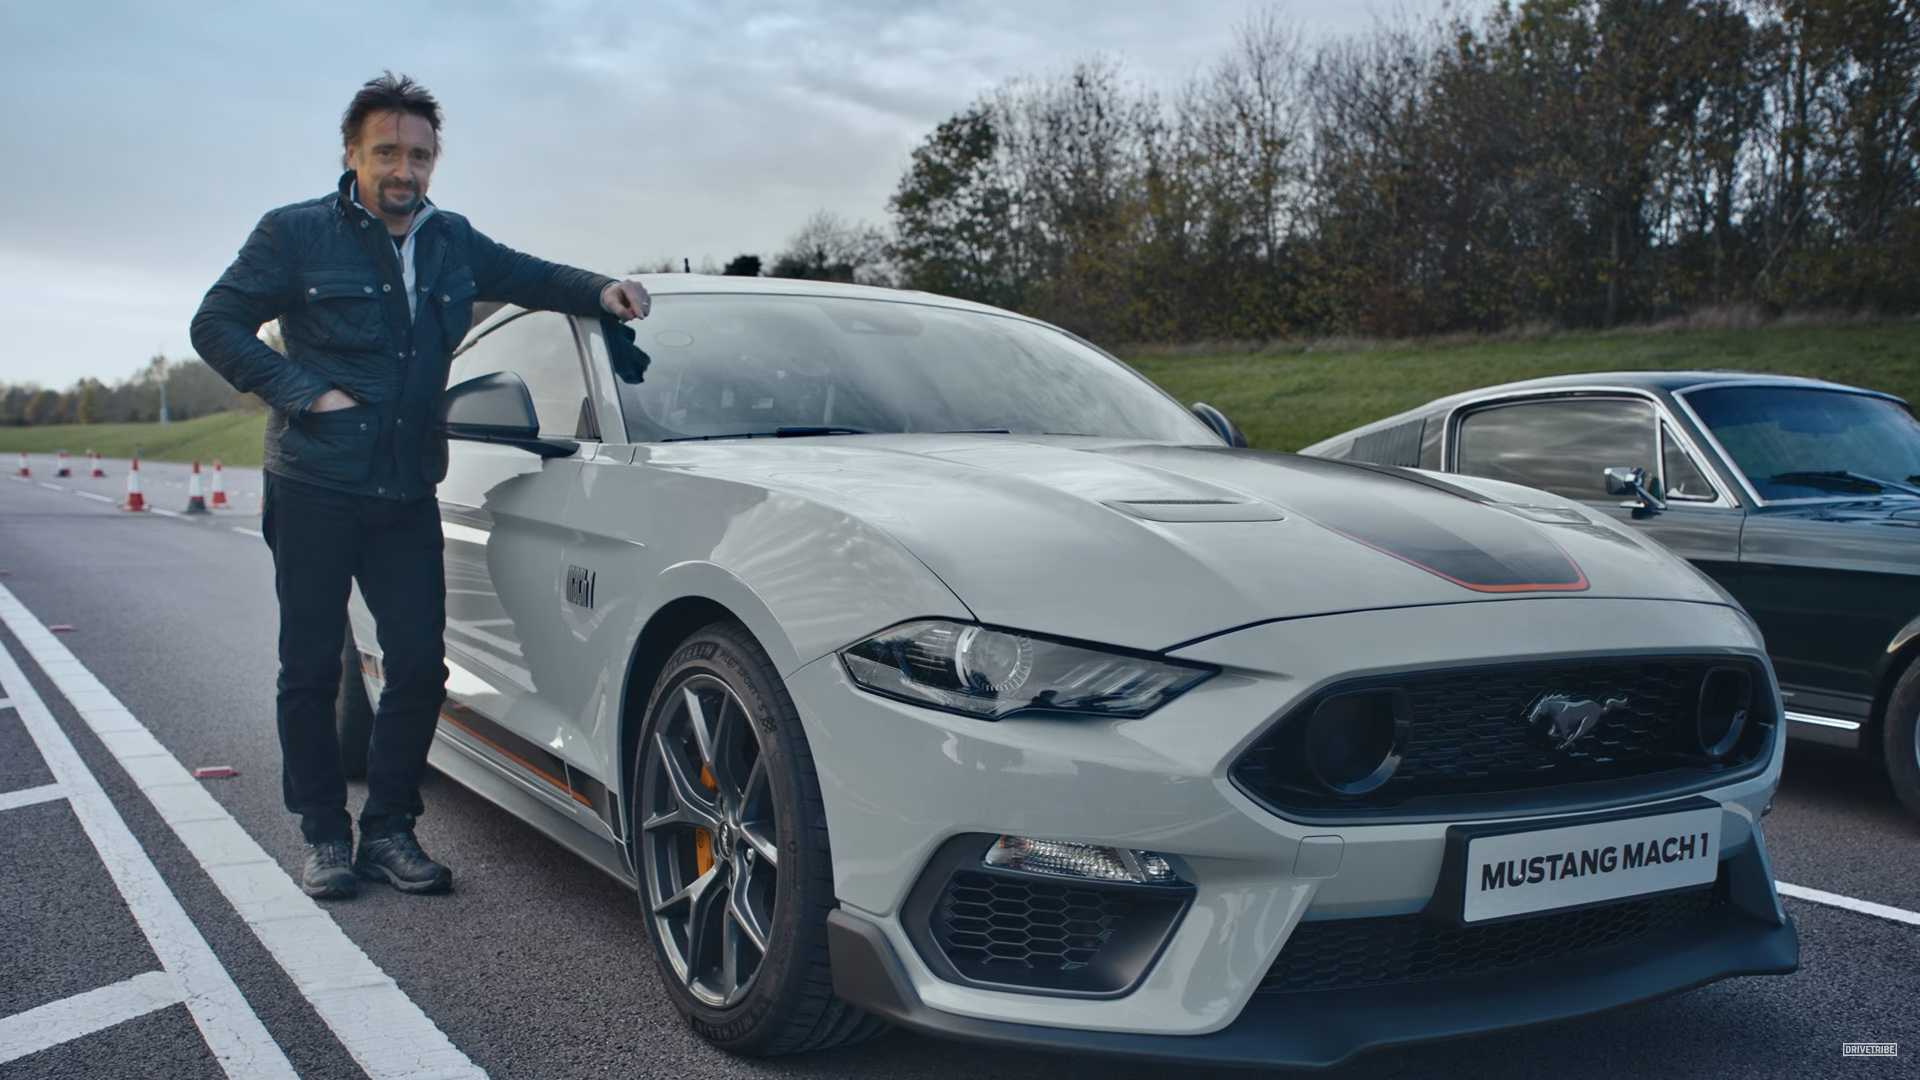 See Richard Hammond Test Drive The New Ford Mustang Mach 1